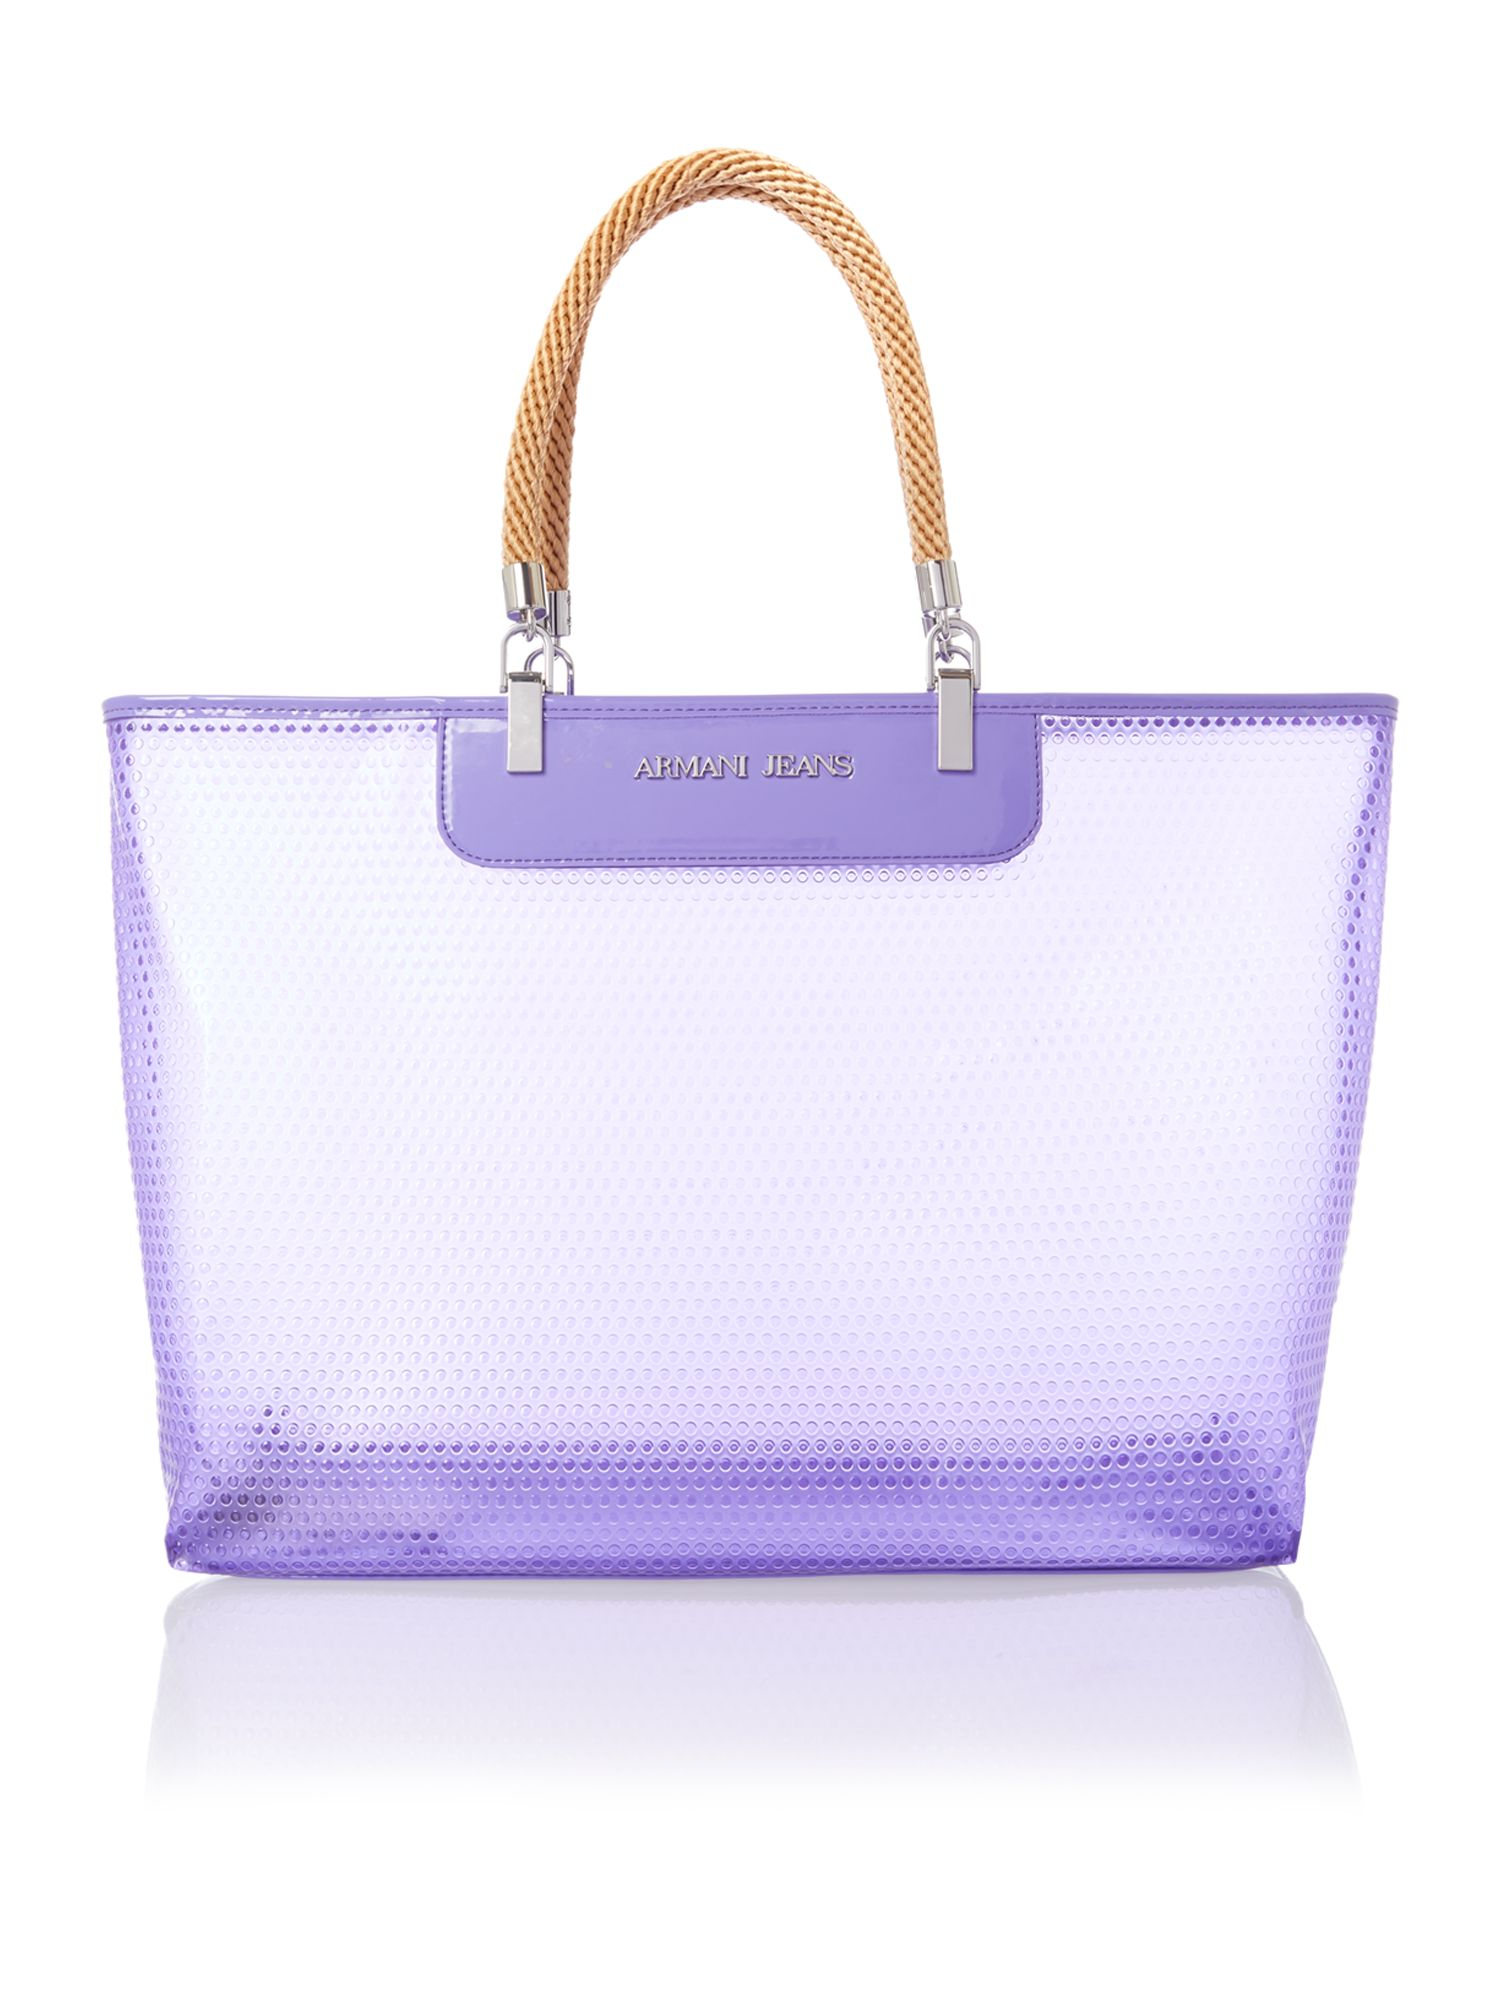 Armani jeans Large Purple Beach Bag with Rope Handles in Purple | Lyst